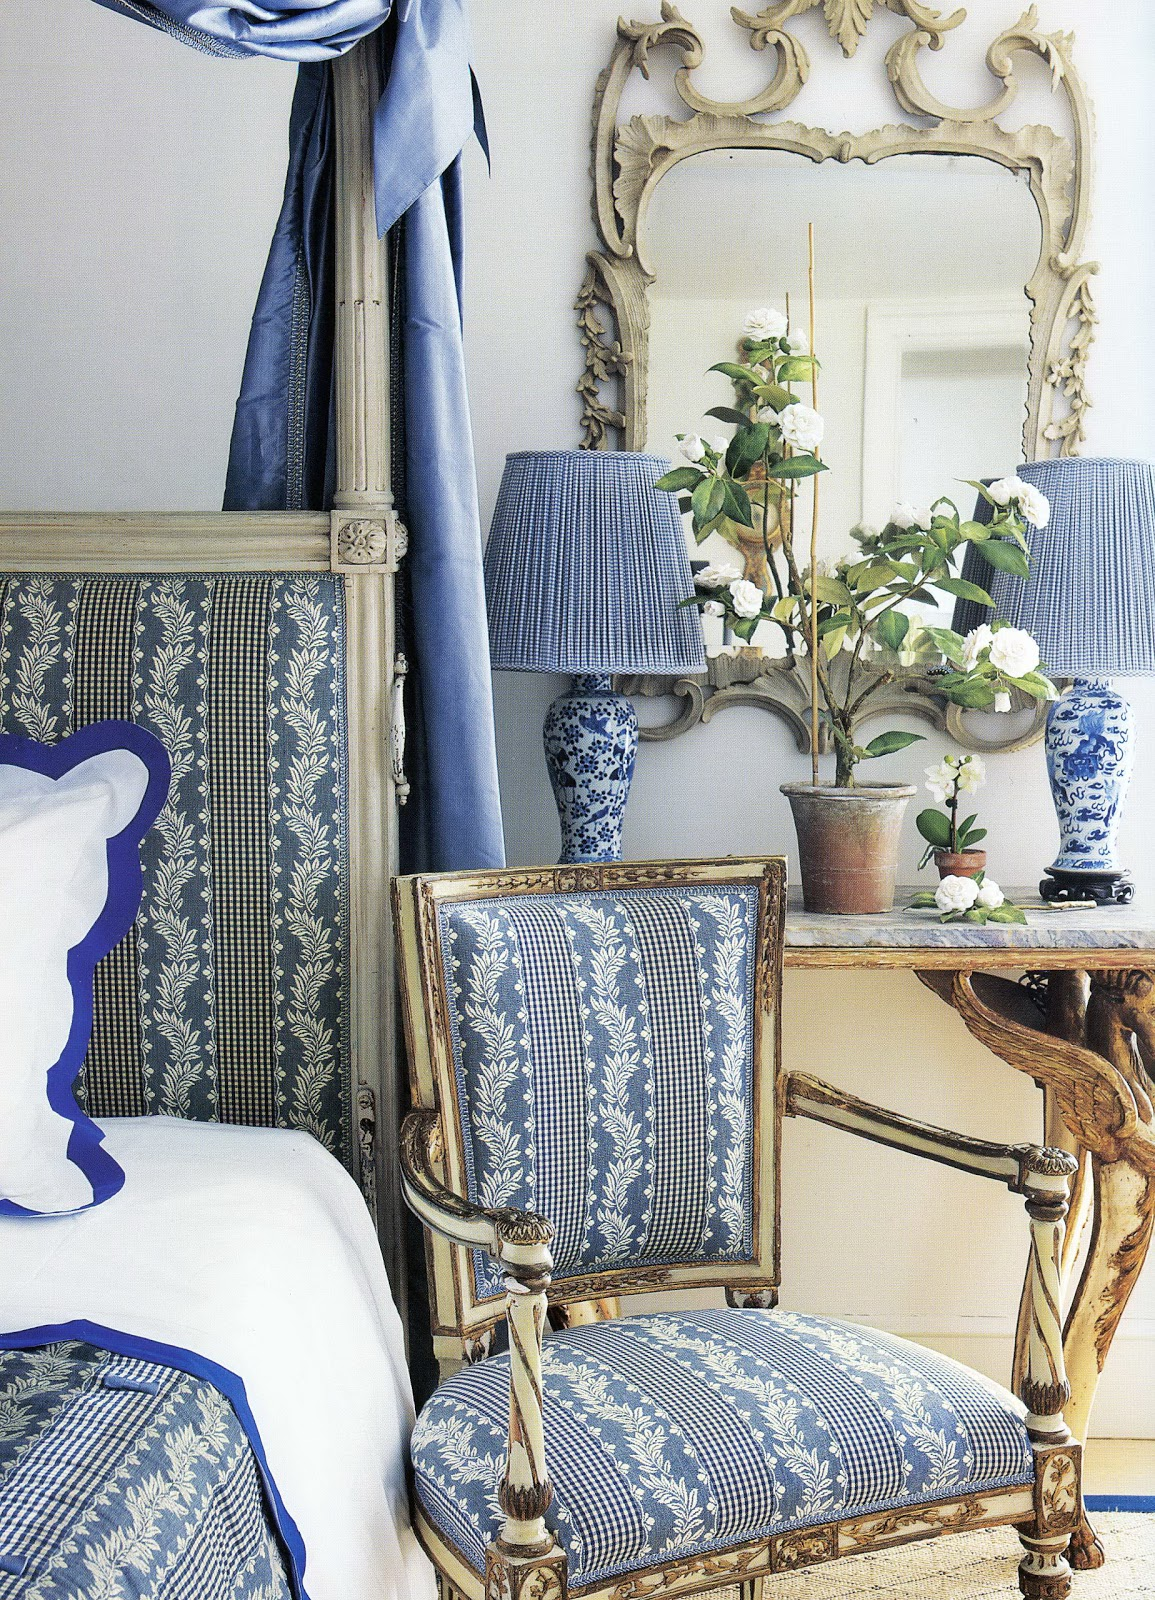 Decorating With Blue And White Unique Of Decorating with Blue and White Photos